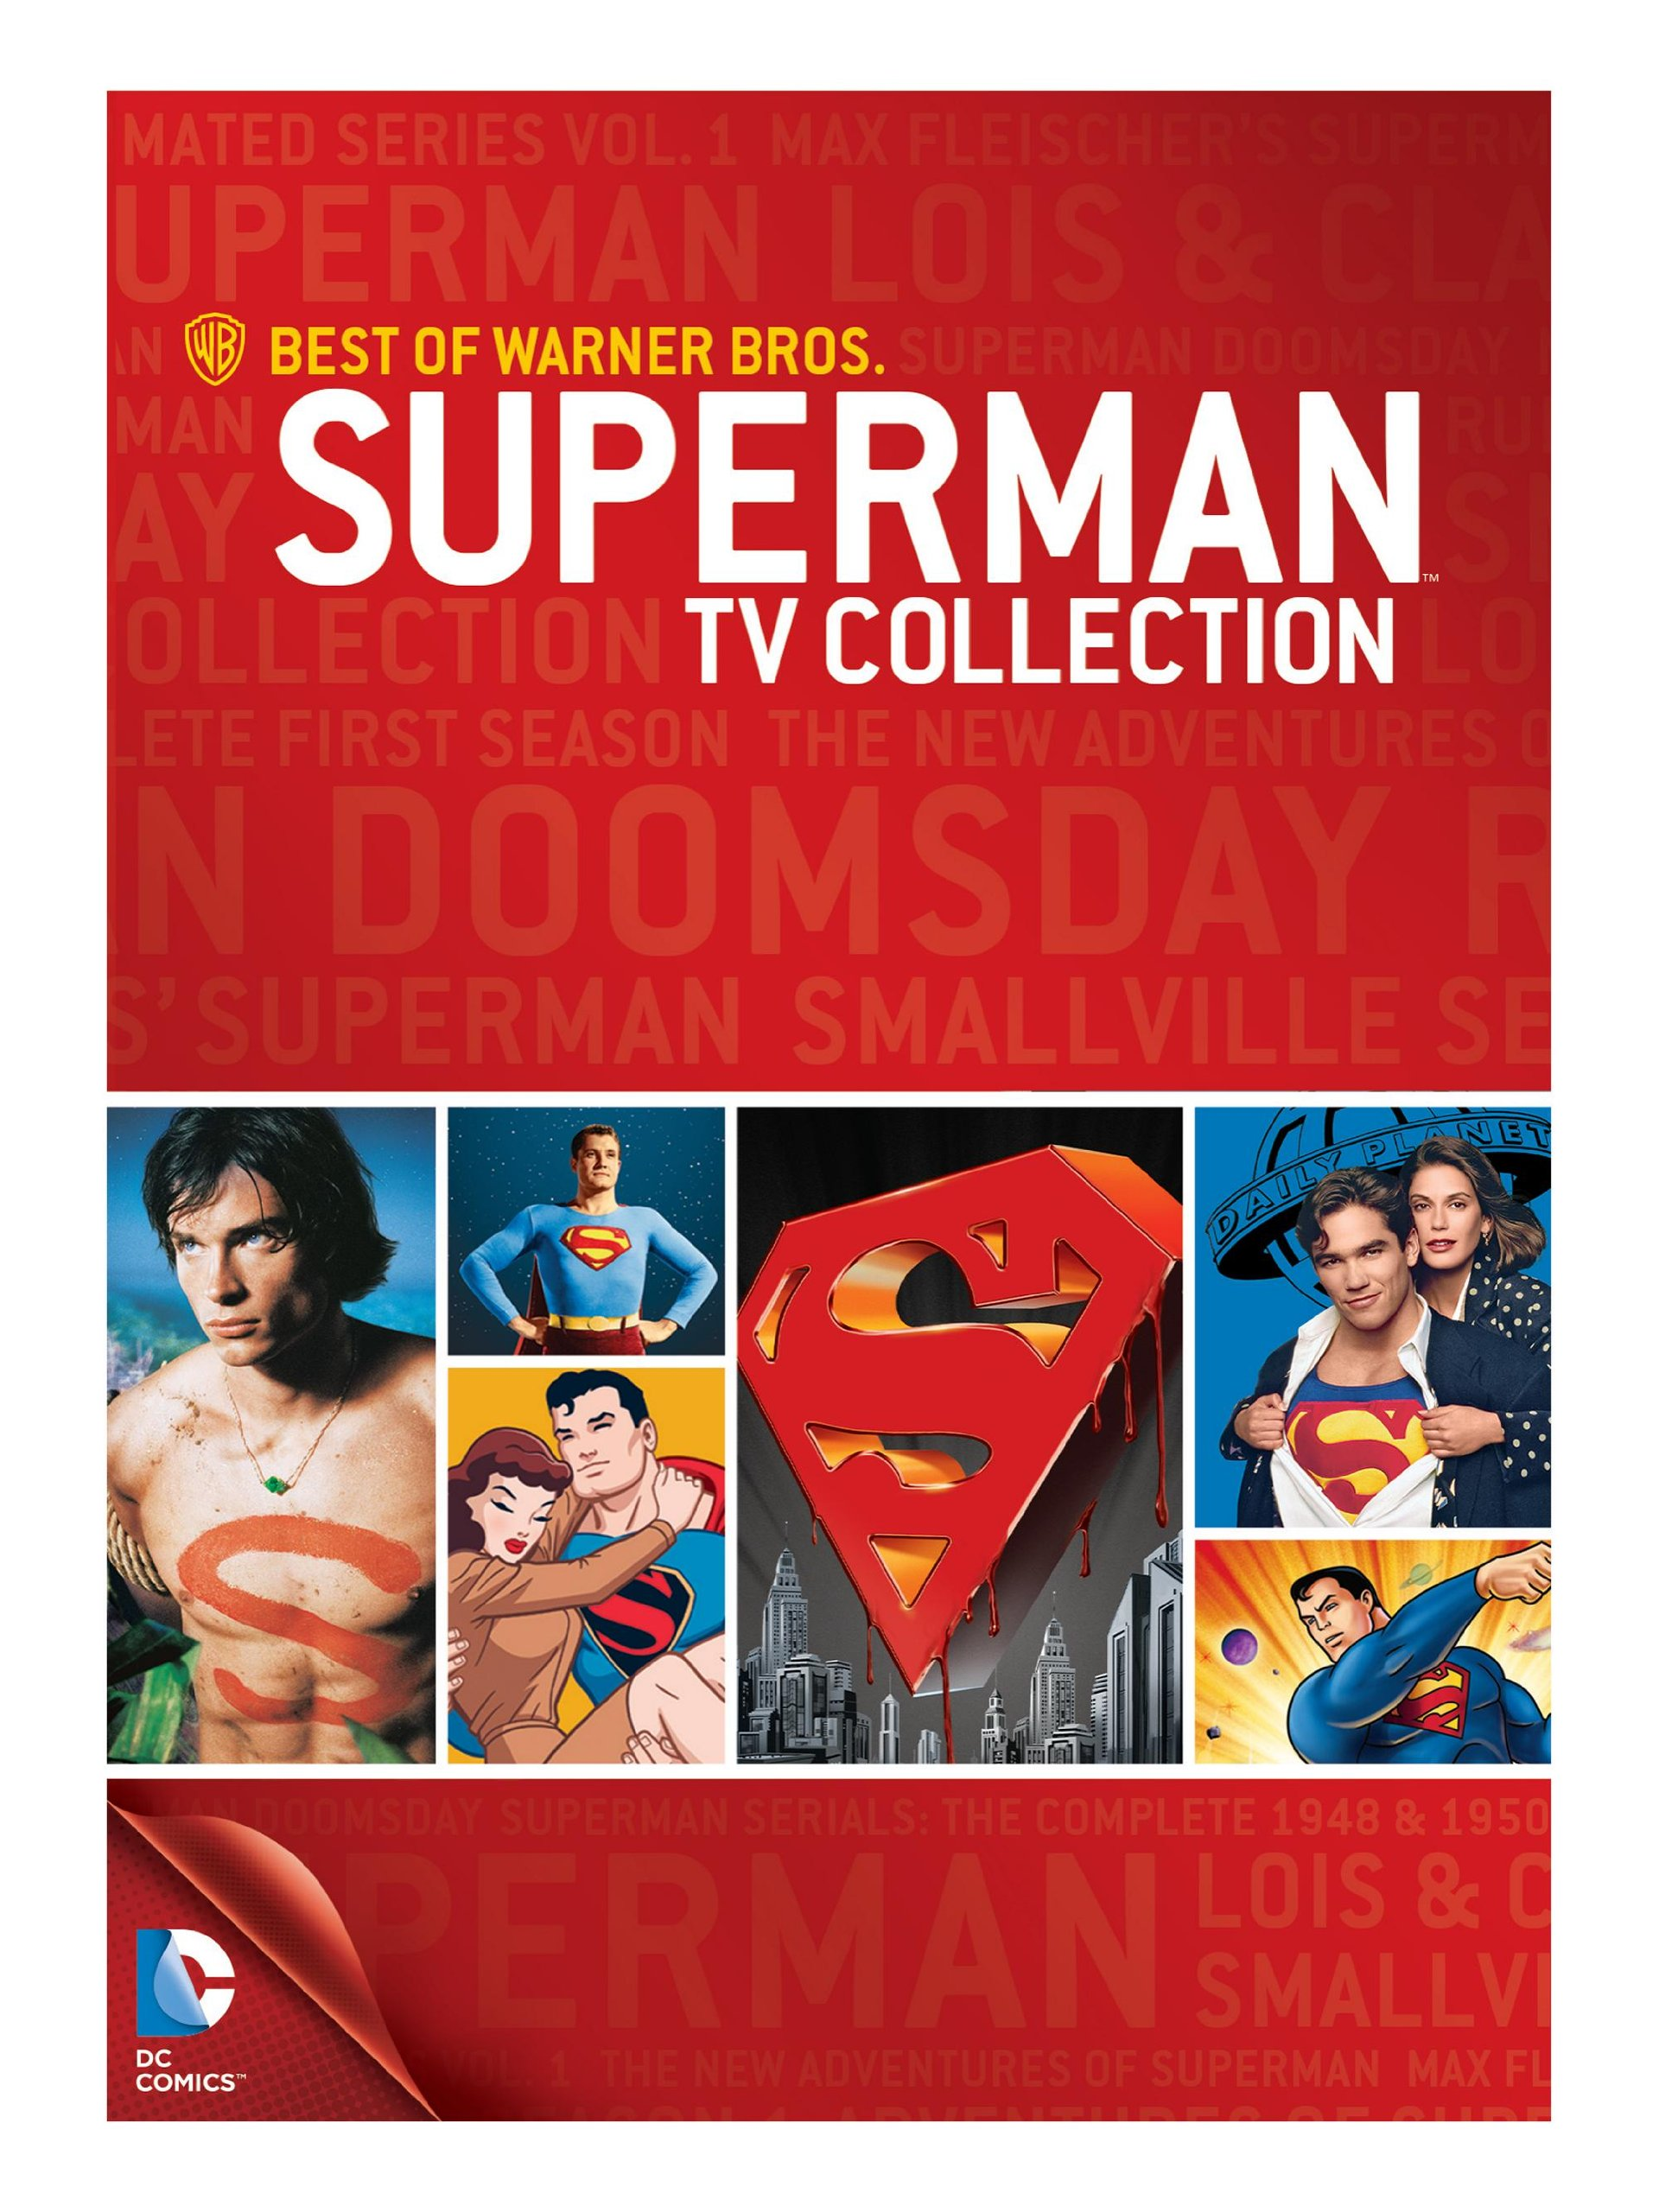 Best of Warner Bros, The - Superman TV Collection by Warner Bros